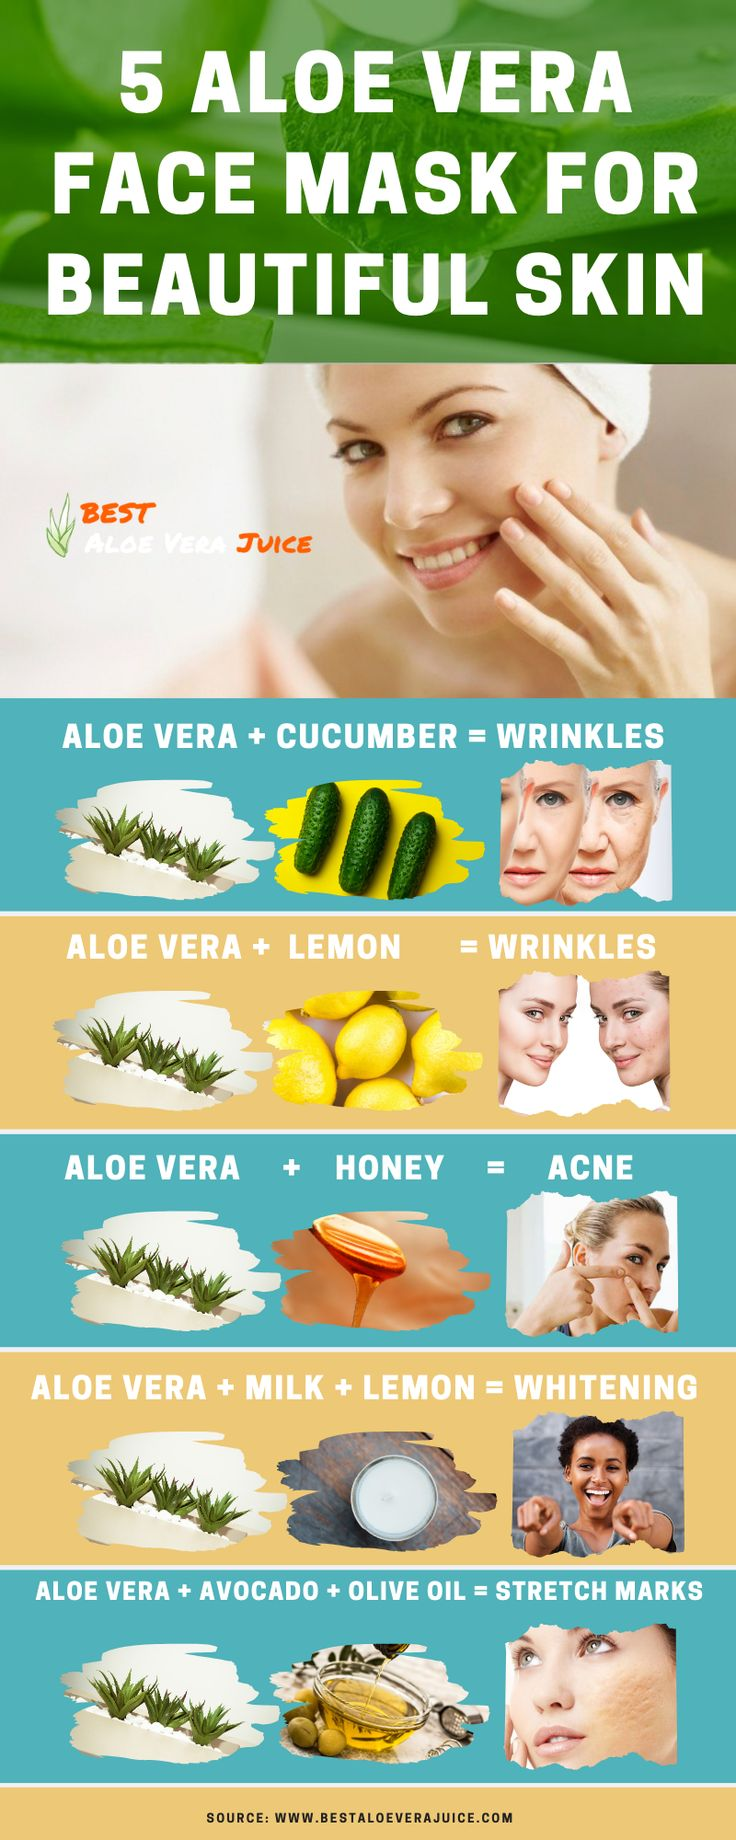 Benefits of aloe vera gel for skin and hair care best